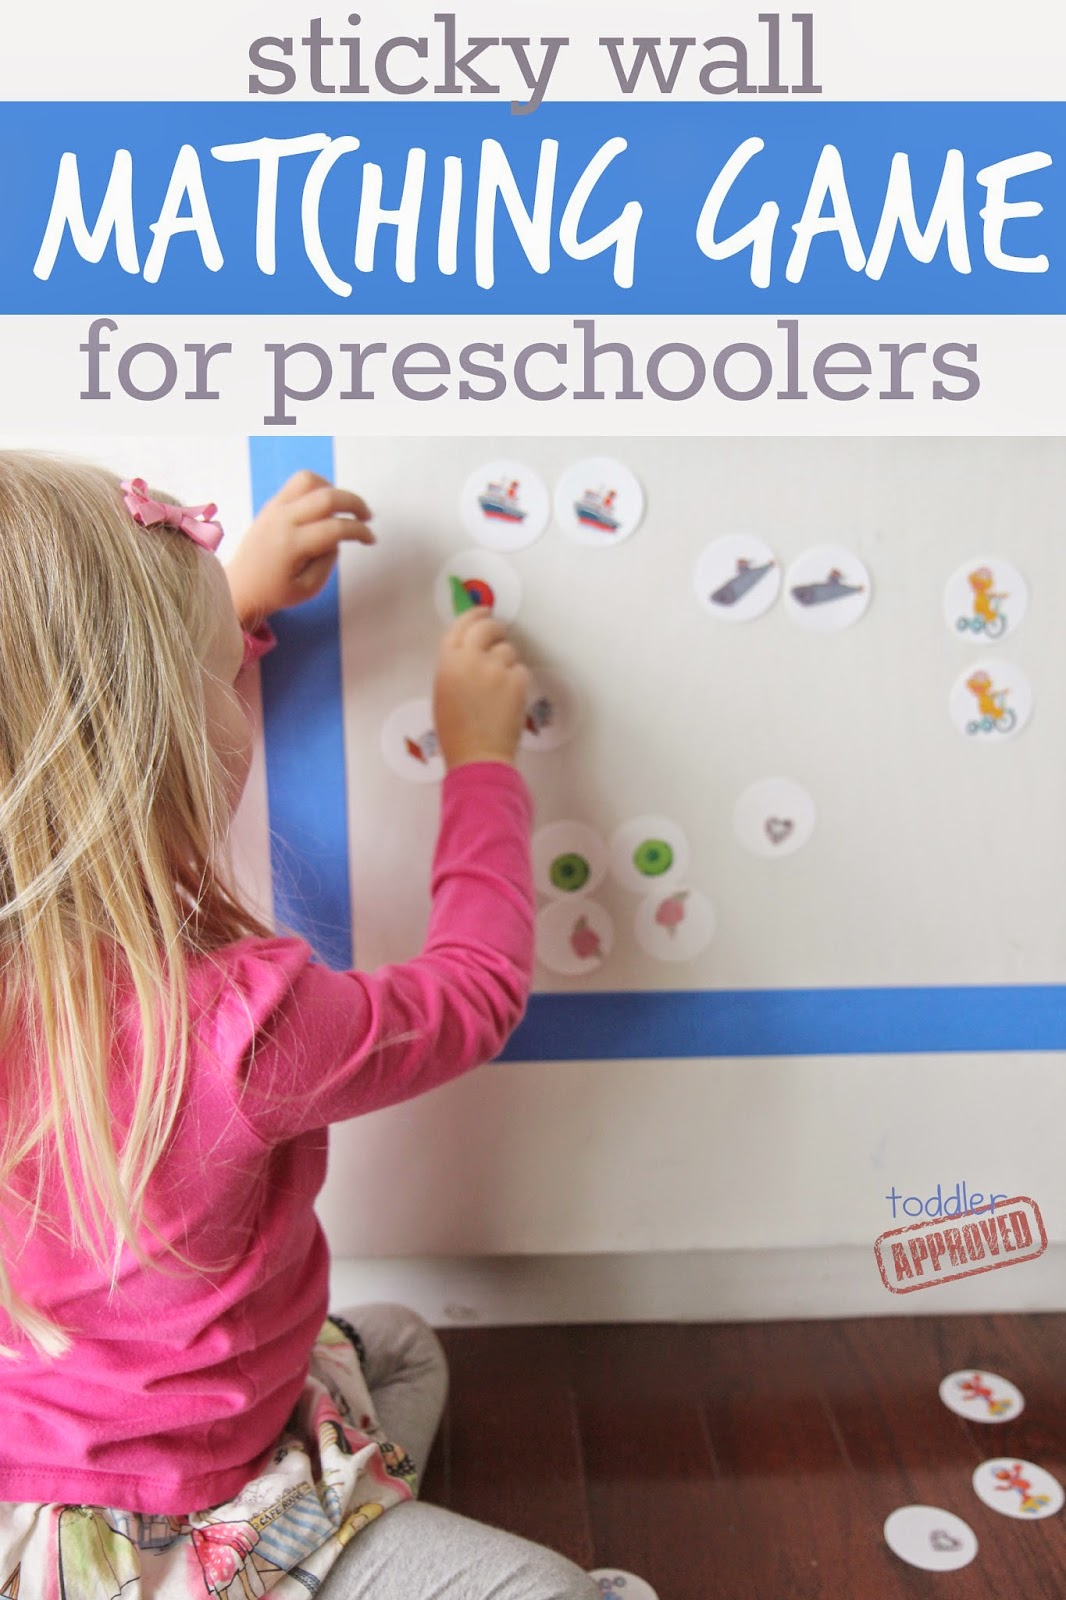 Toddler Approved   Sticky Wall Matching Game for Preschoolers Thursday  April 24  2014